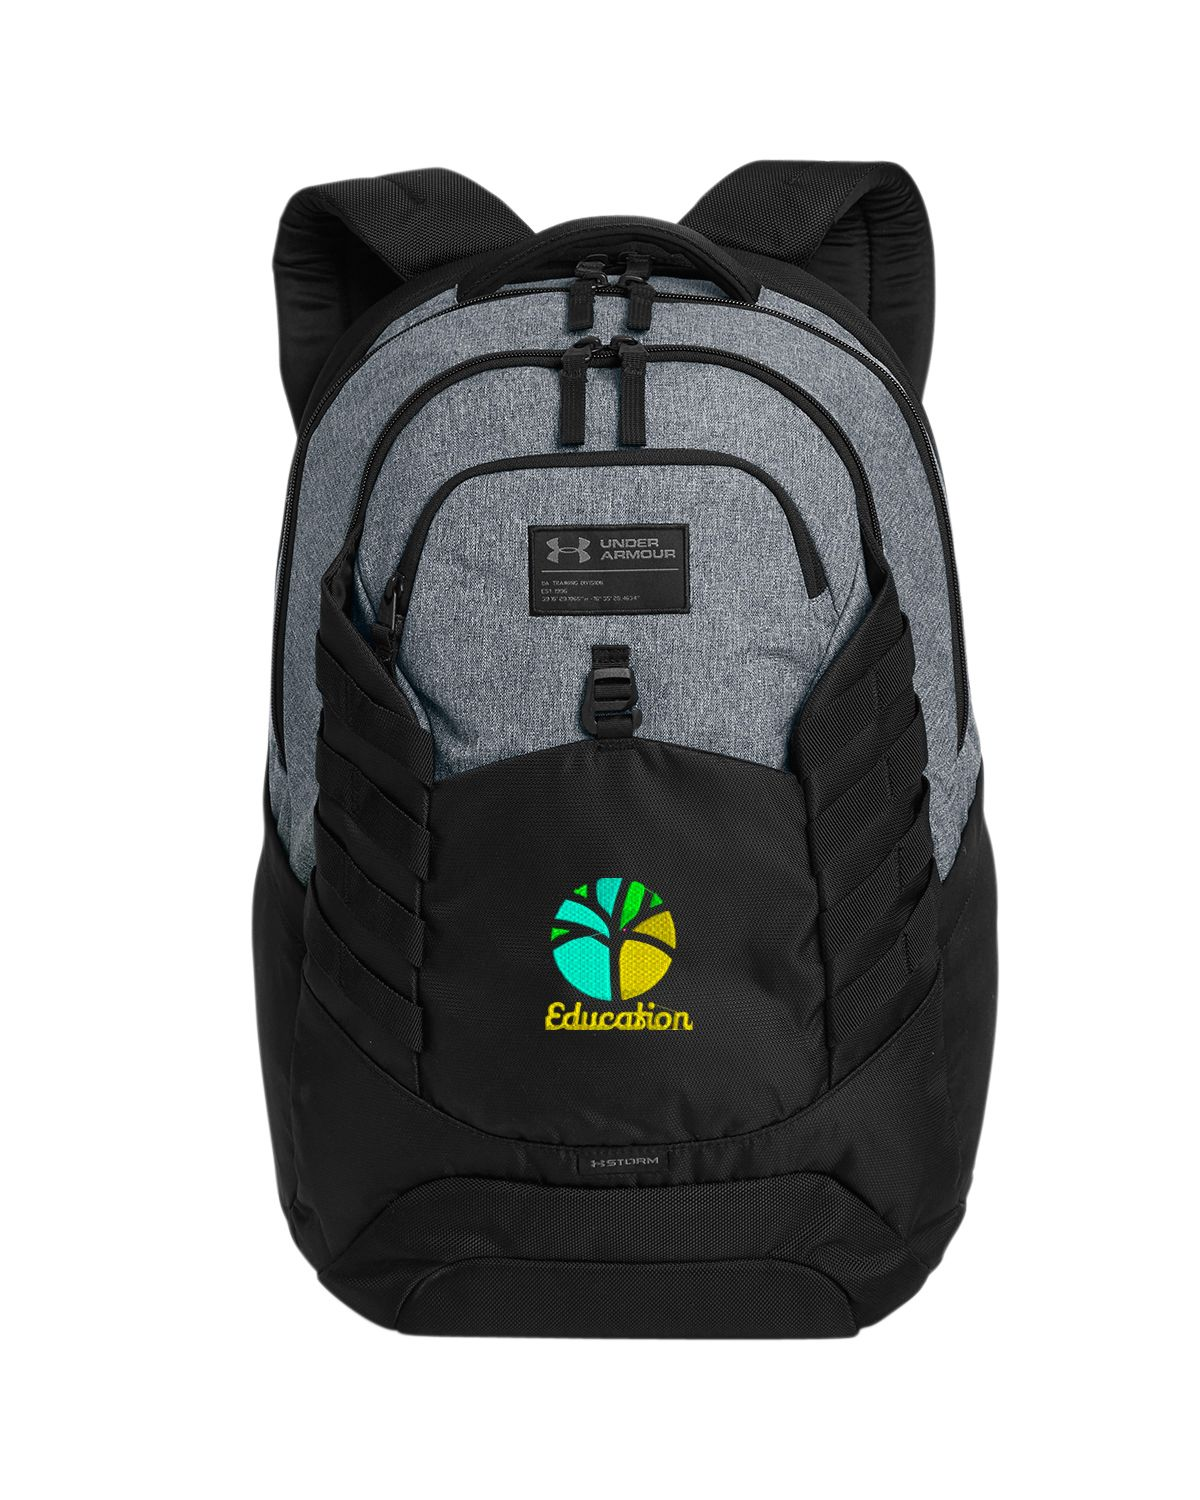 Under Armour 1319909 Corporate Hudson Backpack - Free Shipping Available df961c26b1075